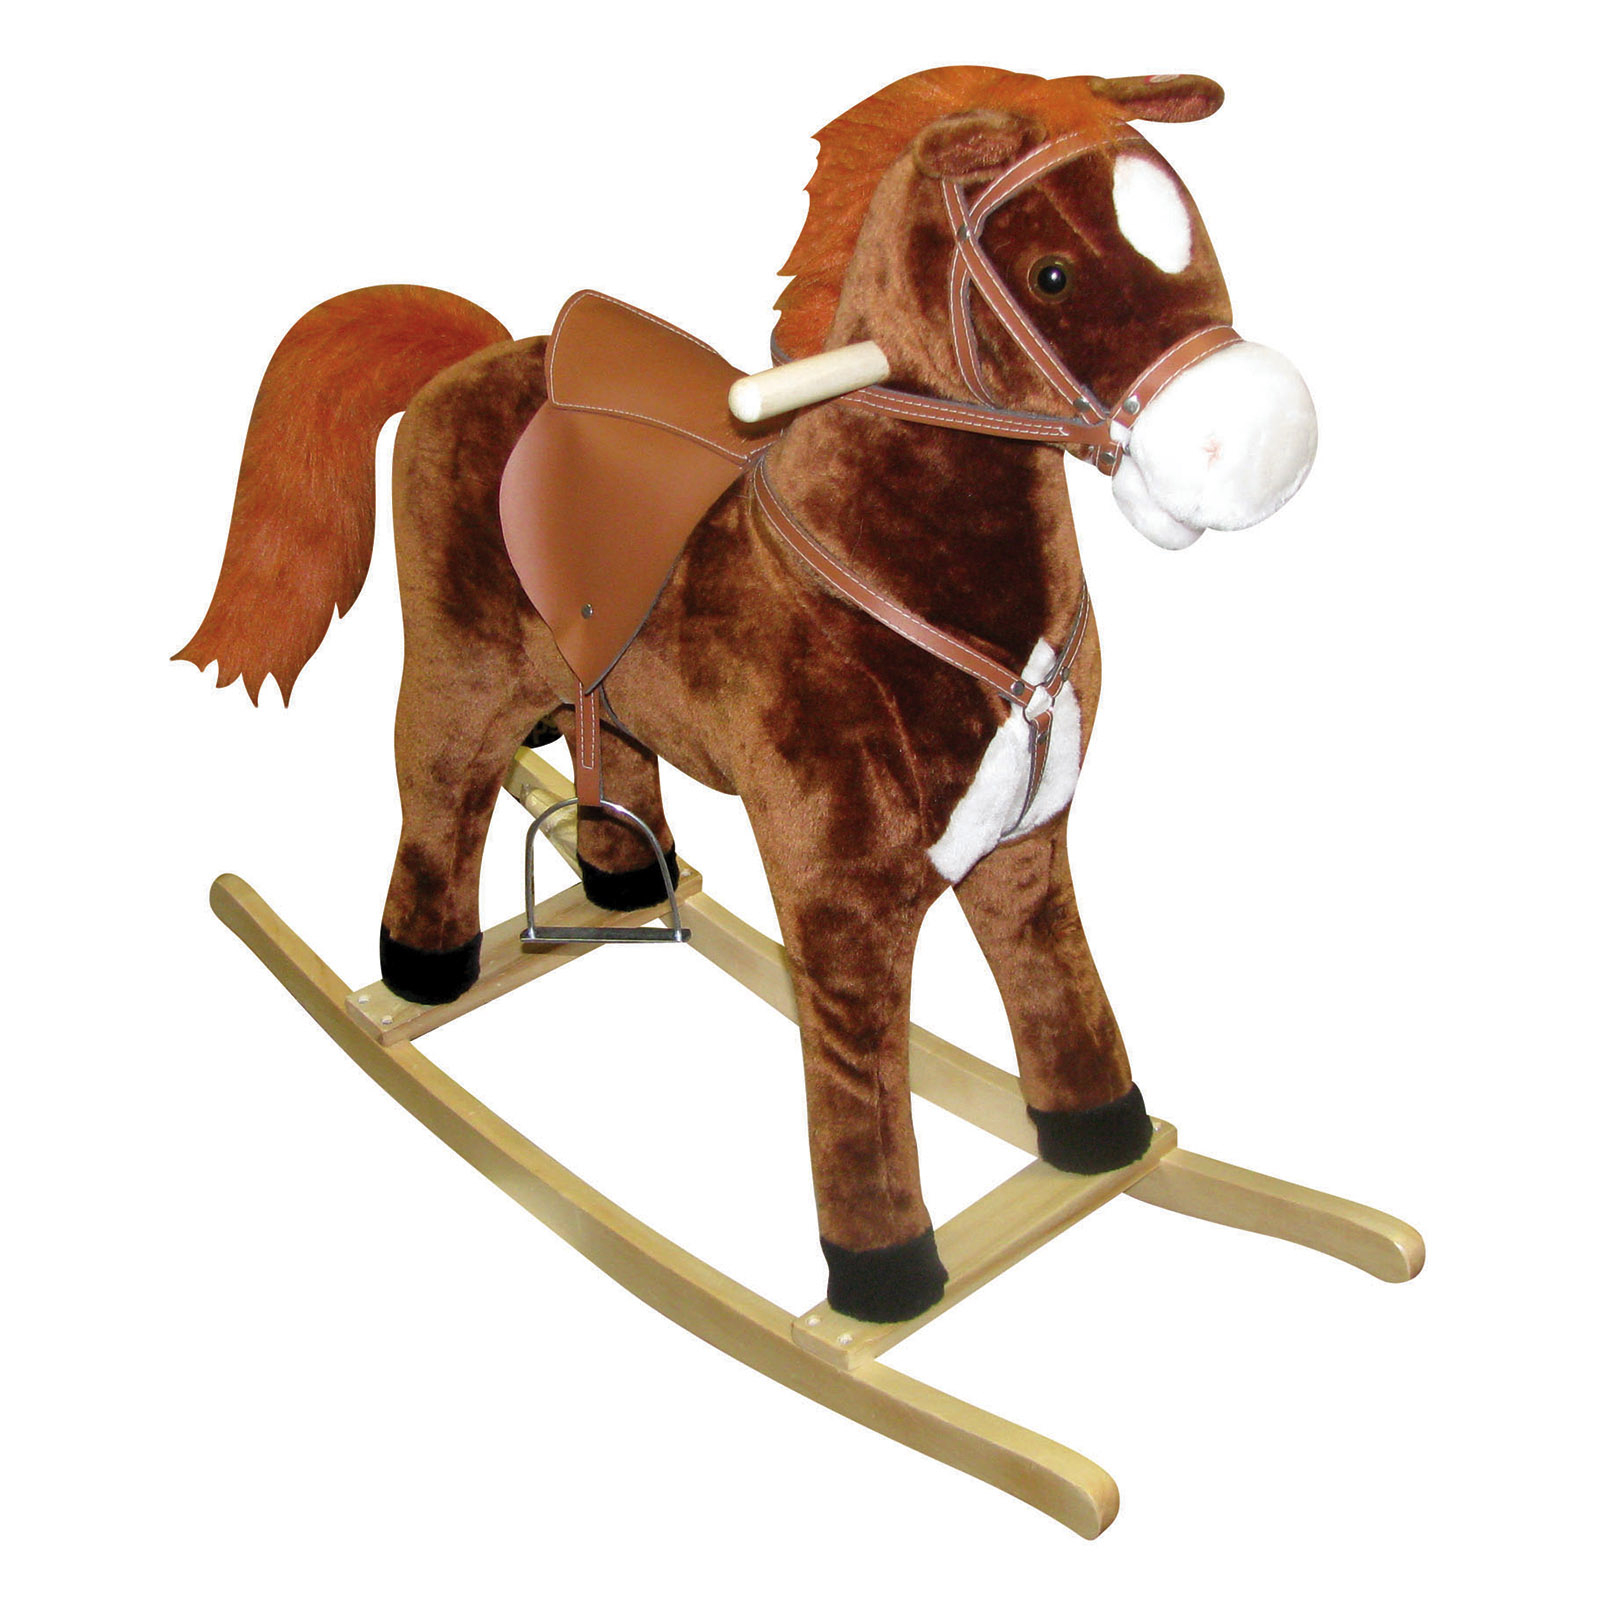 Funny Wooden Toy Hanging on a Spring in the shape of Horse